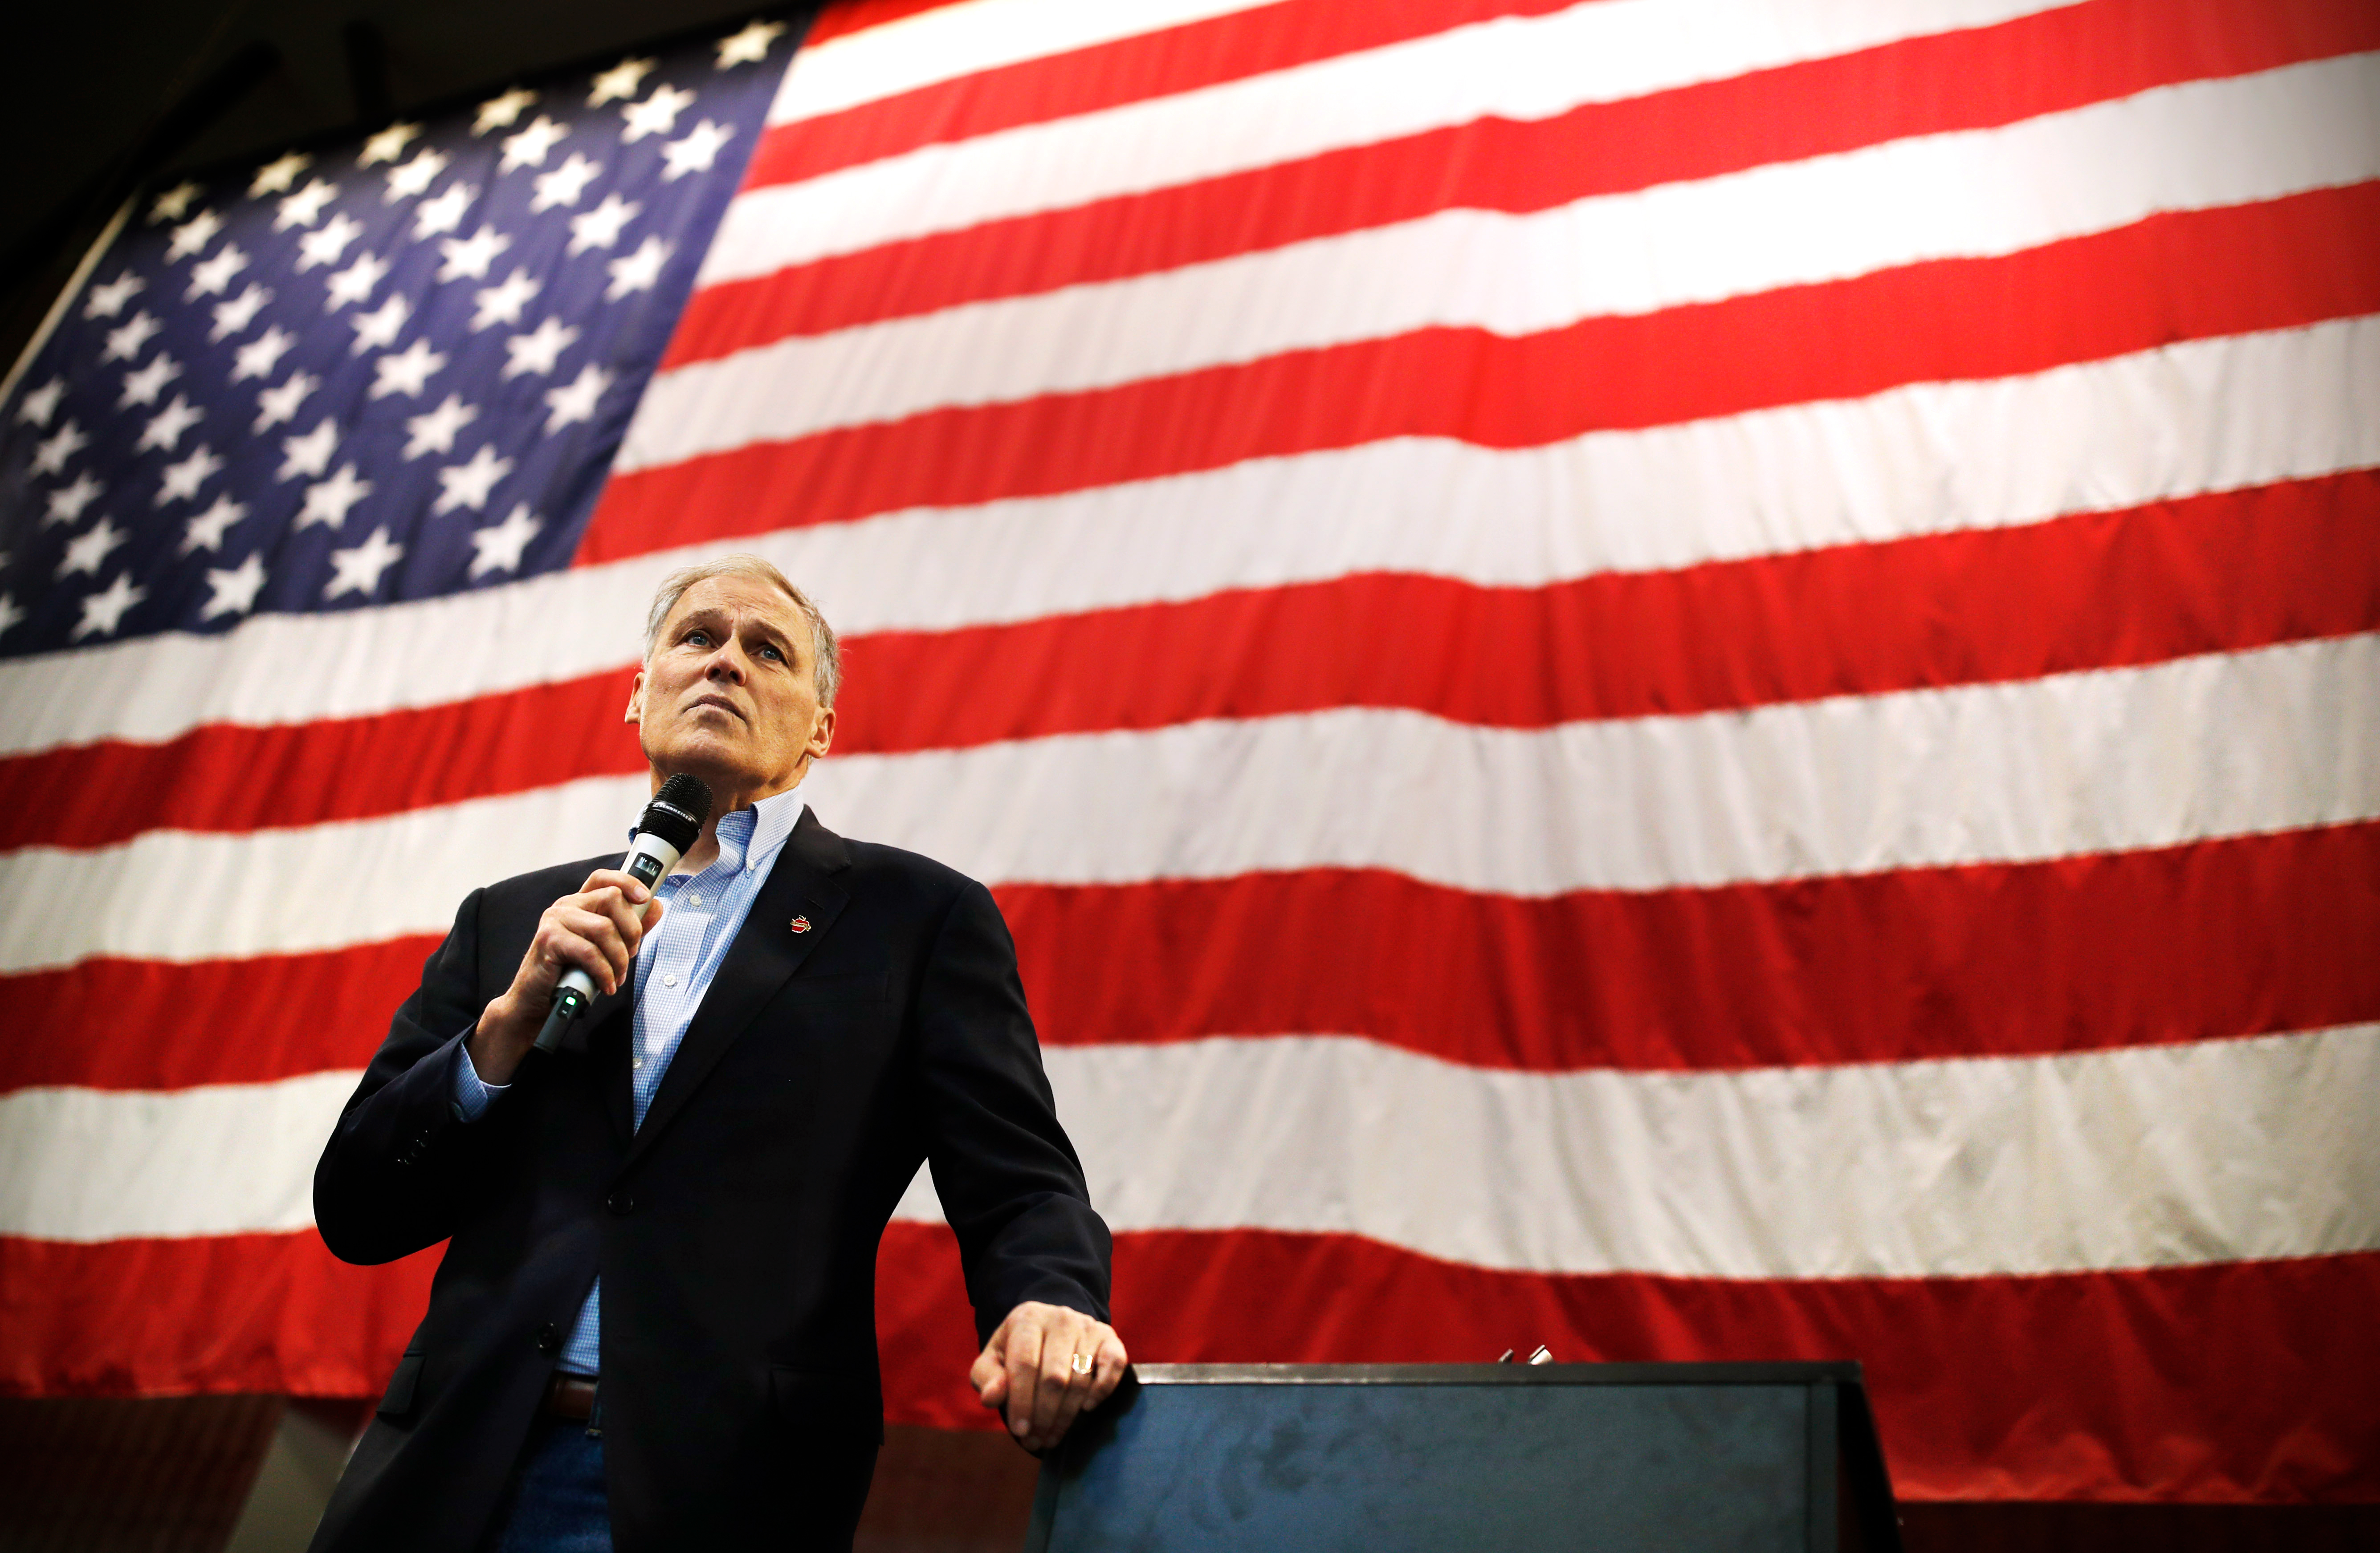 Jay Inslee's presidential campaign is all about climate change